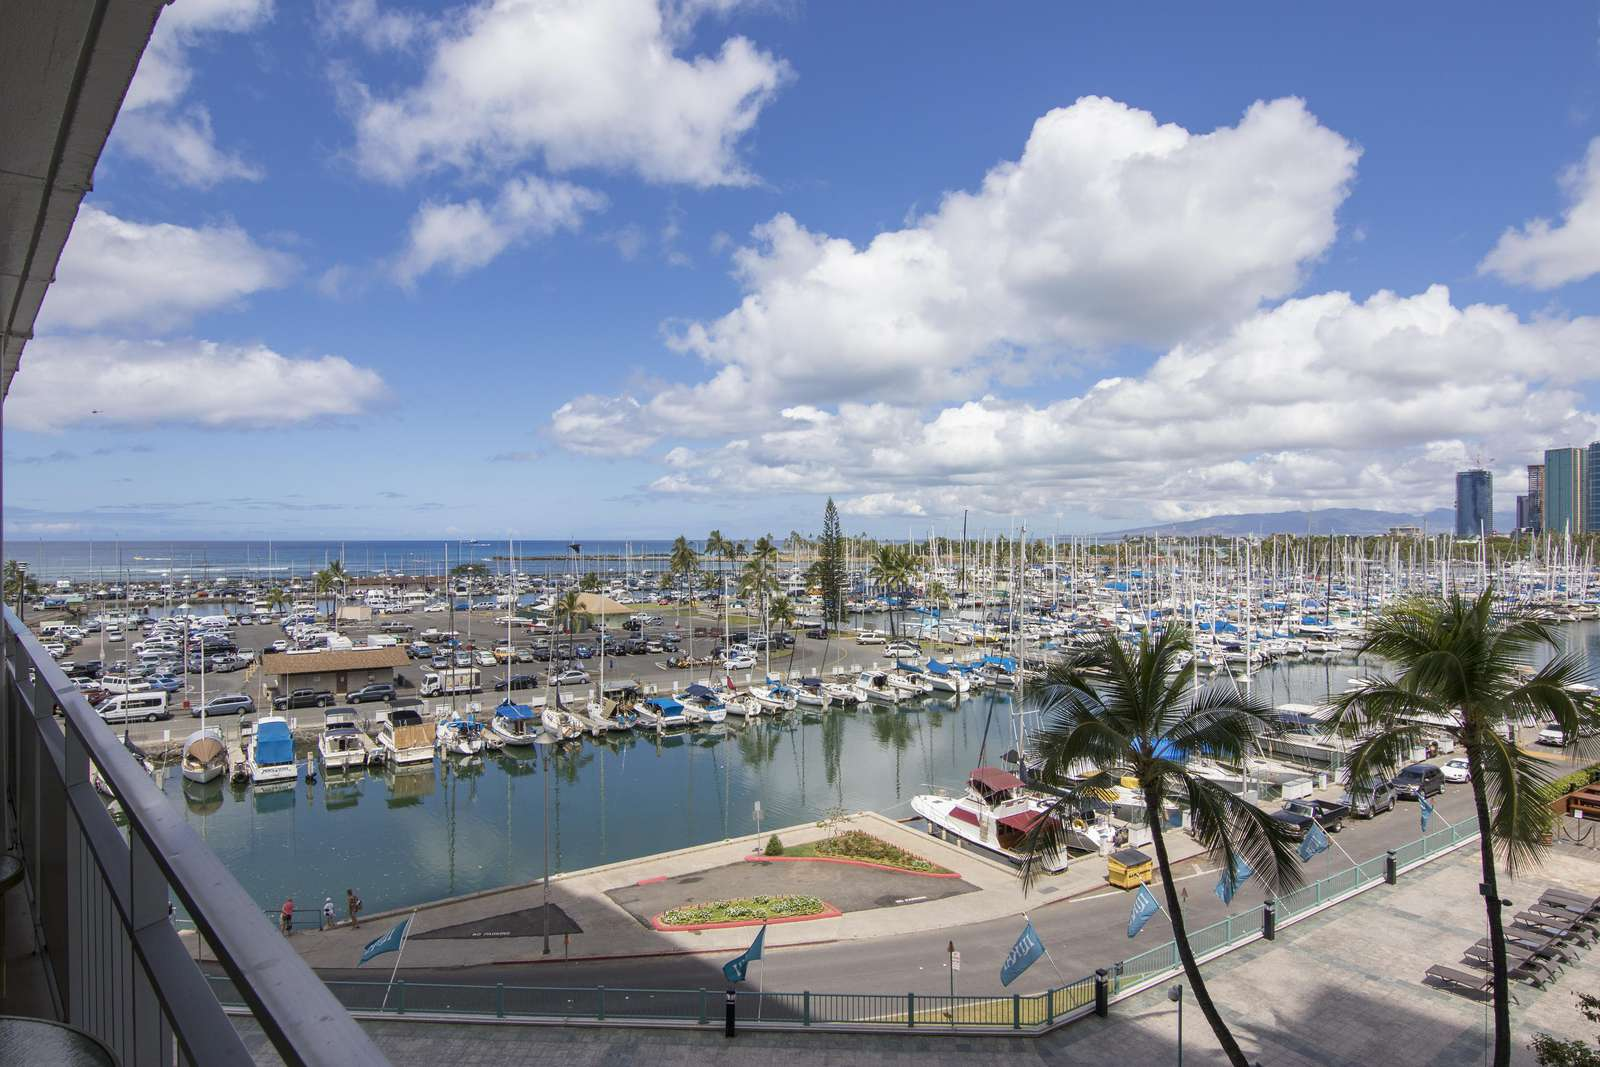 yacht harbor view from lanai